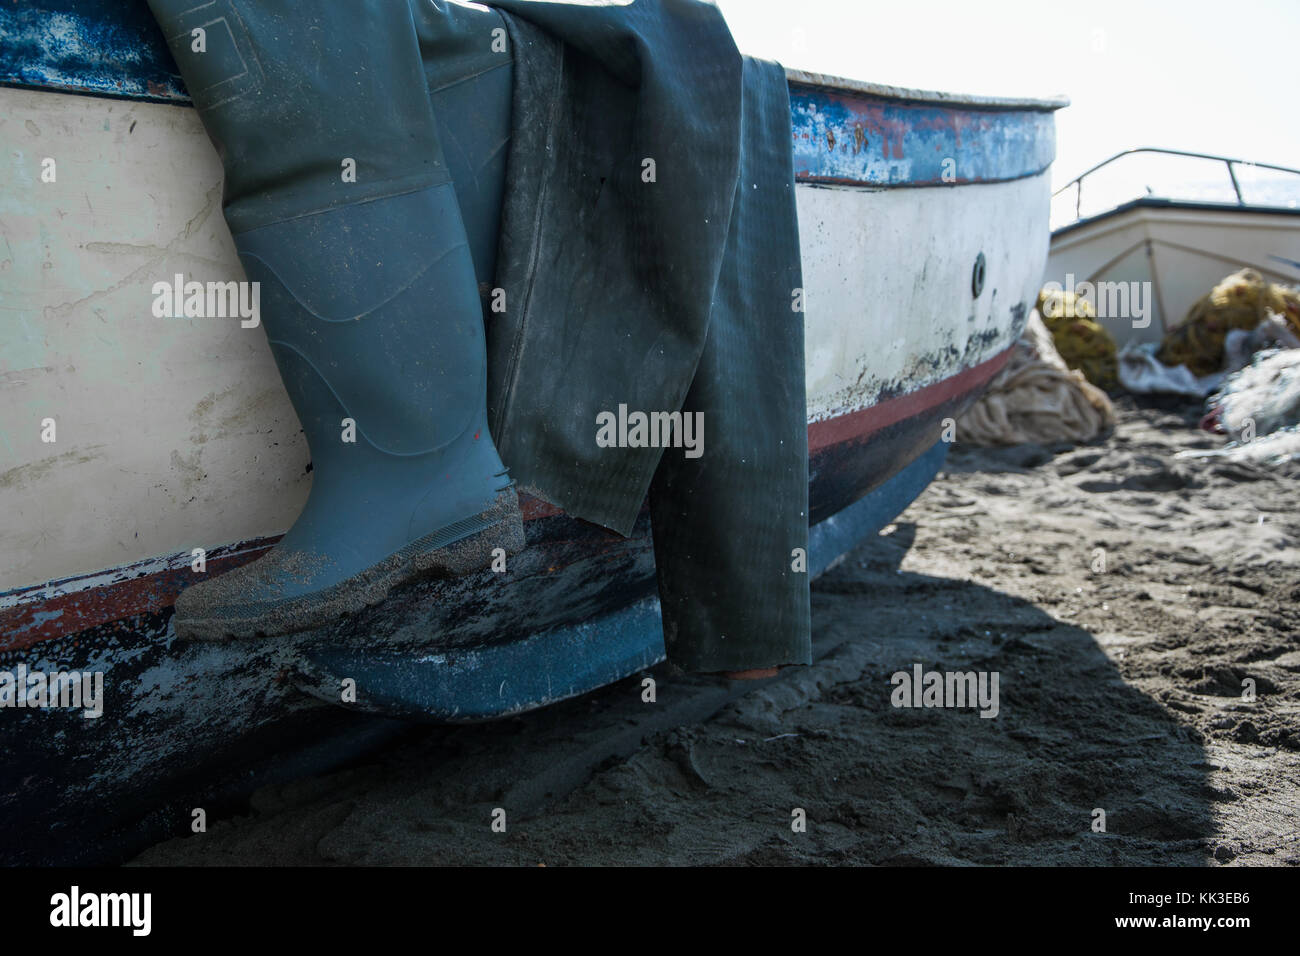 Concrete boots stock photos concrete boots stock images for Fishing shoes for the boat